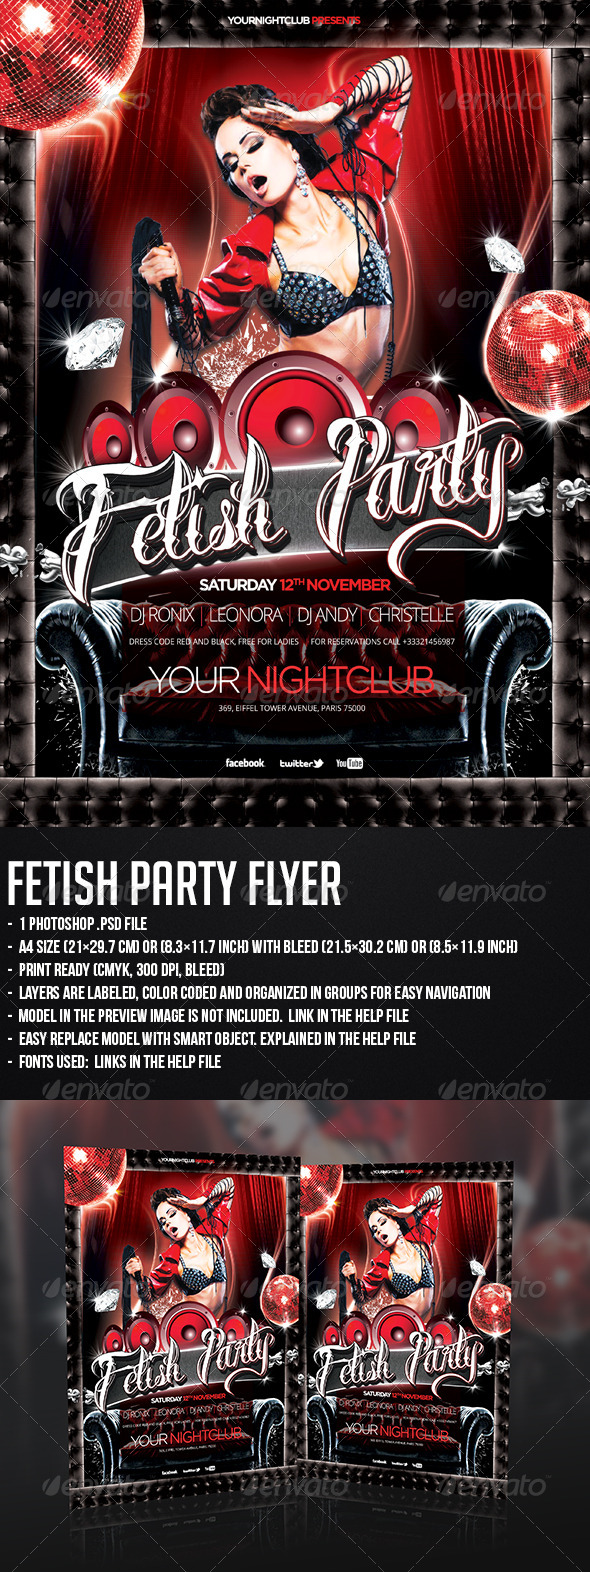 Fetish Party Flyer - Clubs & Parties Events